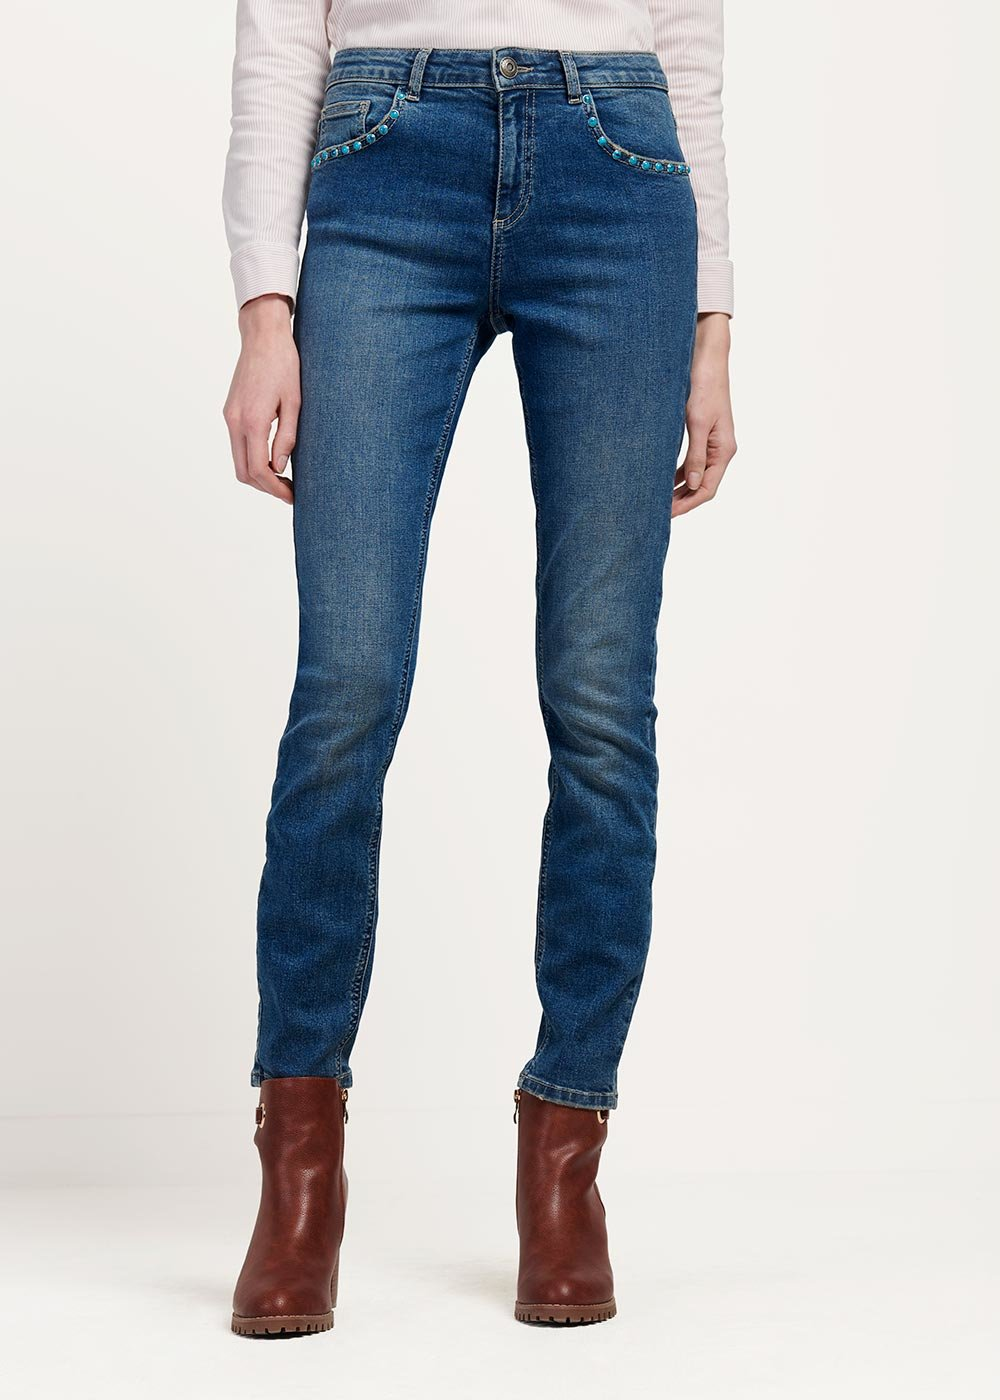 Denim Doris con dettaglio pietre turchesi - Denim - Donna